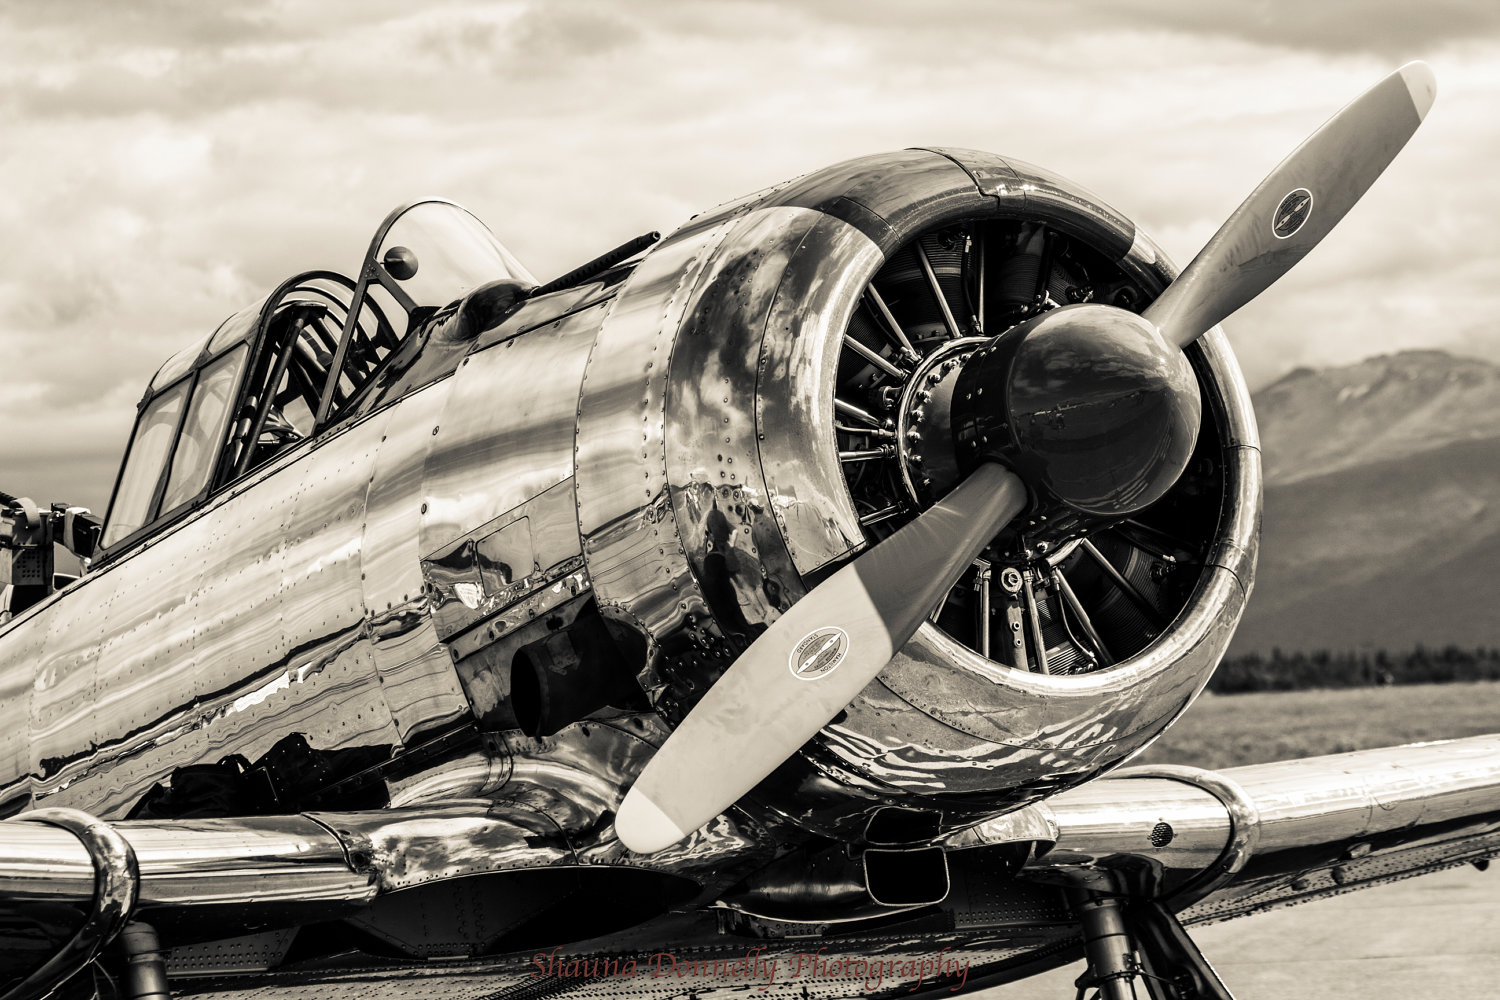 airplane aircraft airplanes planes aviation air plane engine wallpapers desktop classic propeller buzzerg frame cool avion flights paint phone radial